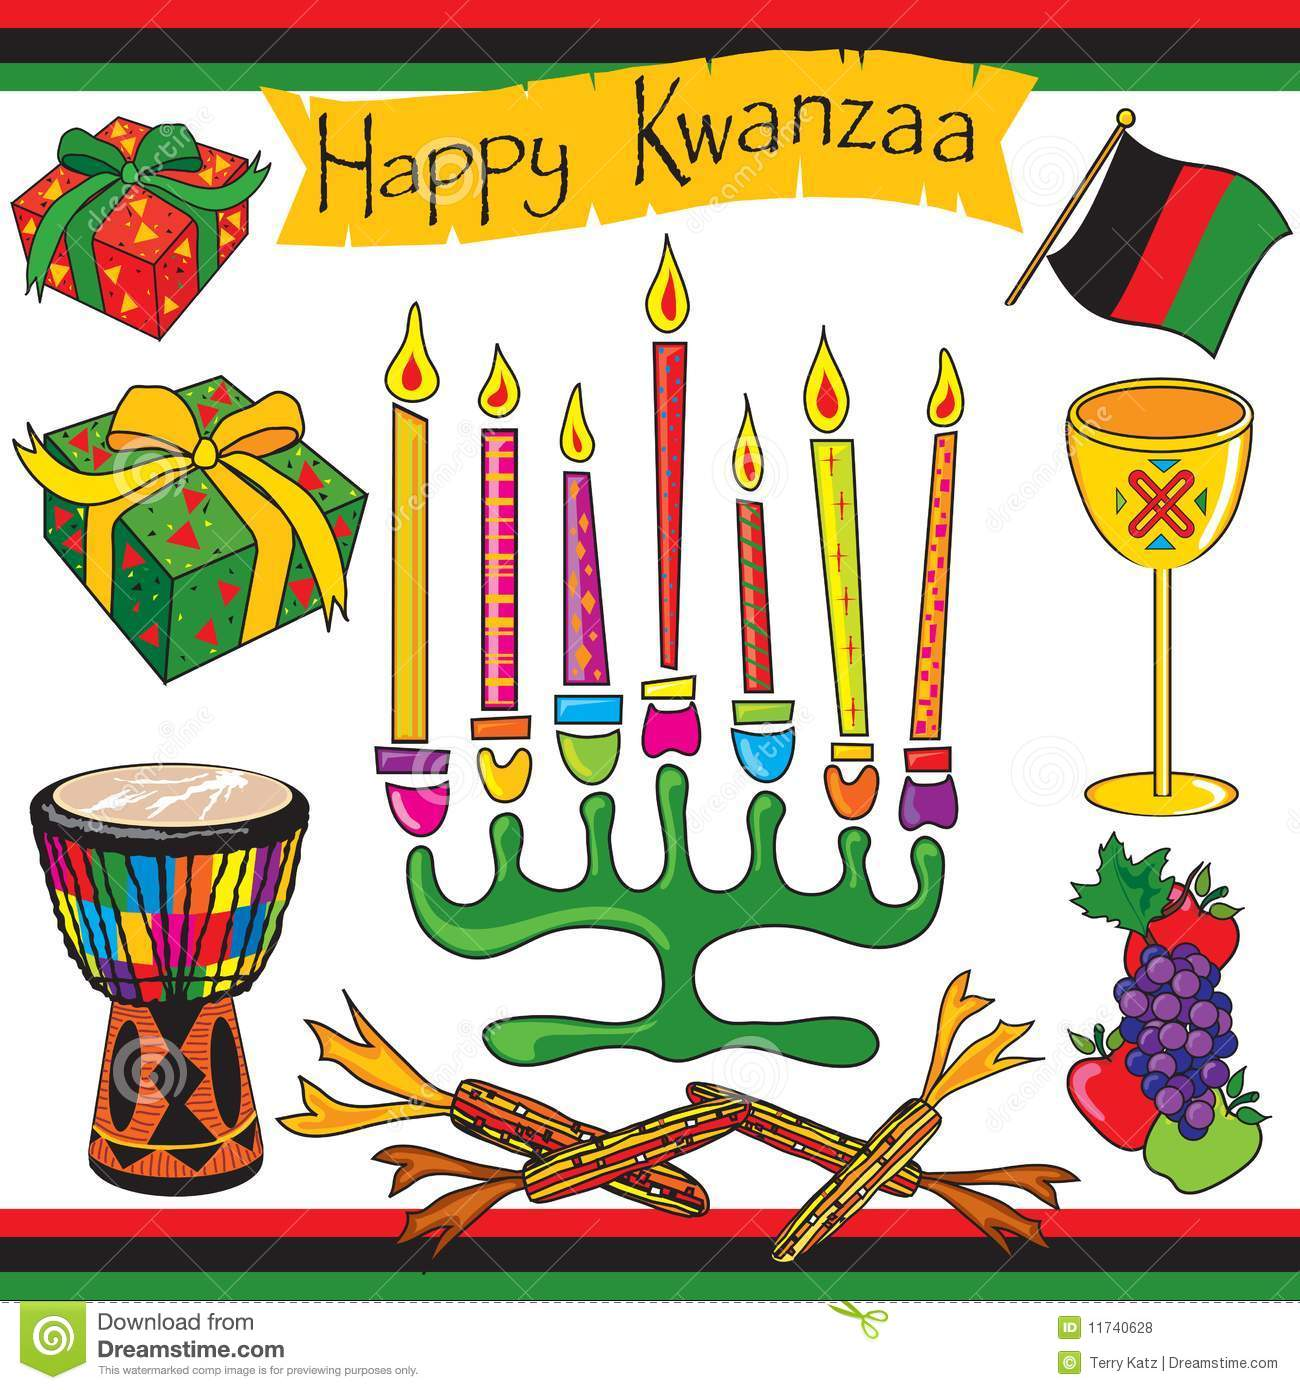 Happy Kwanzaa Happy kwanzaa clip art and